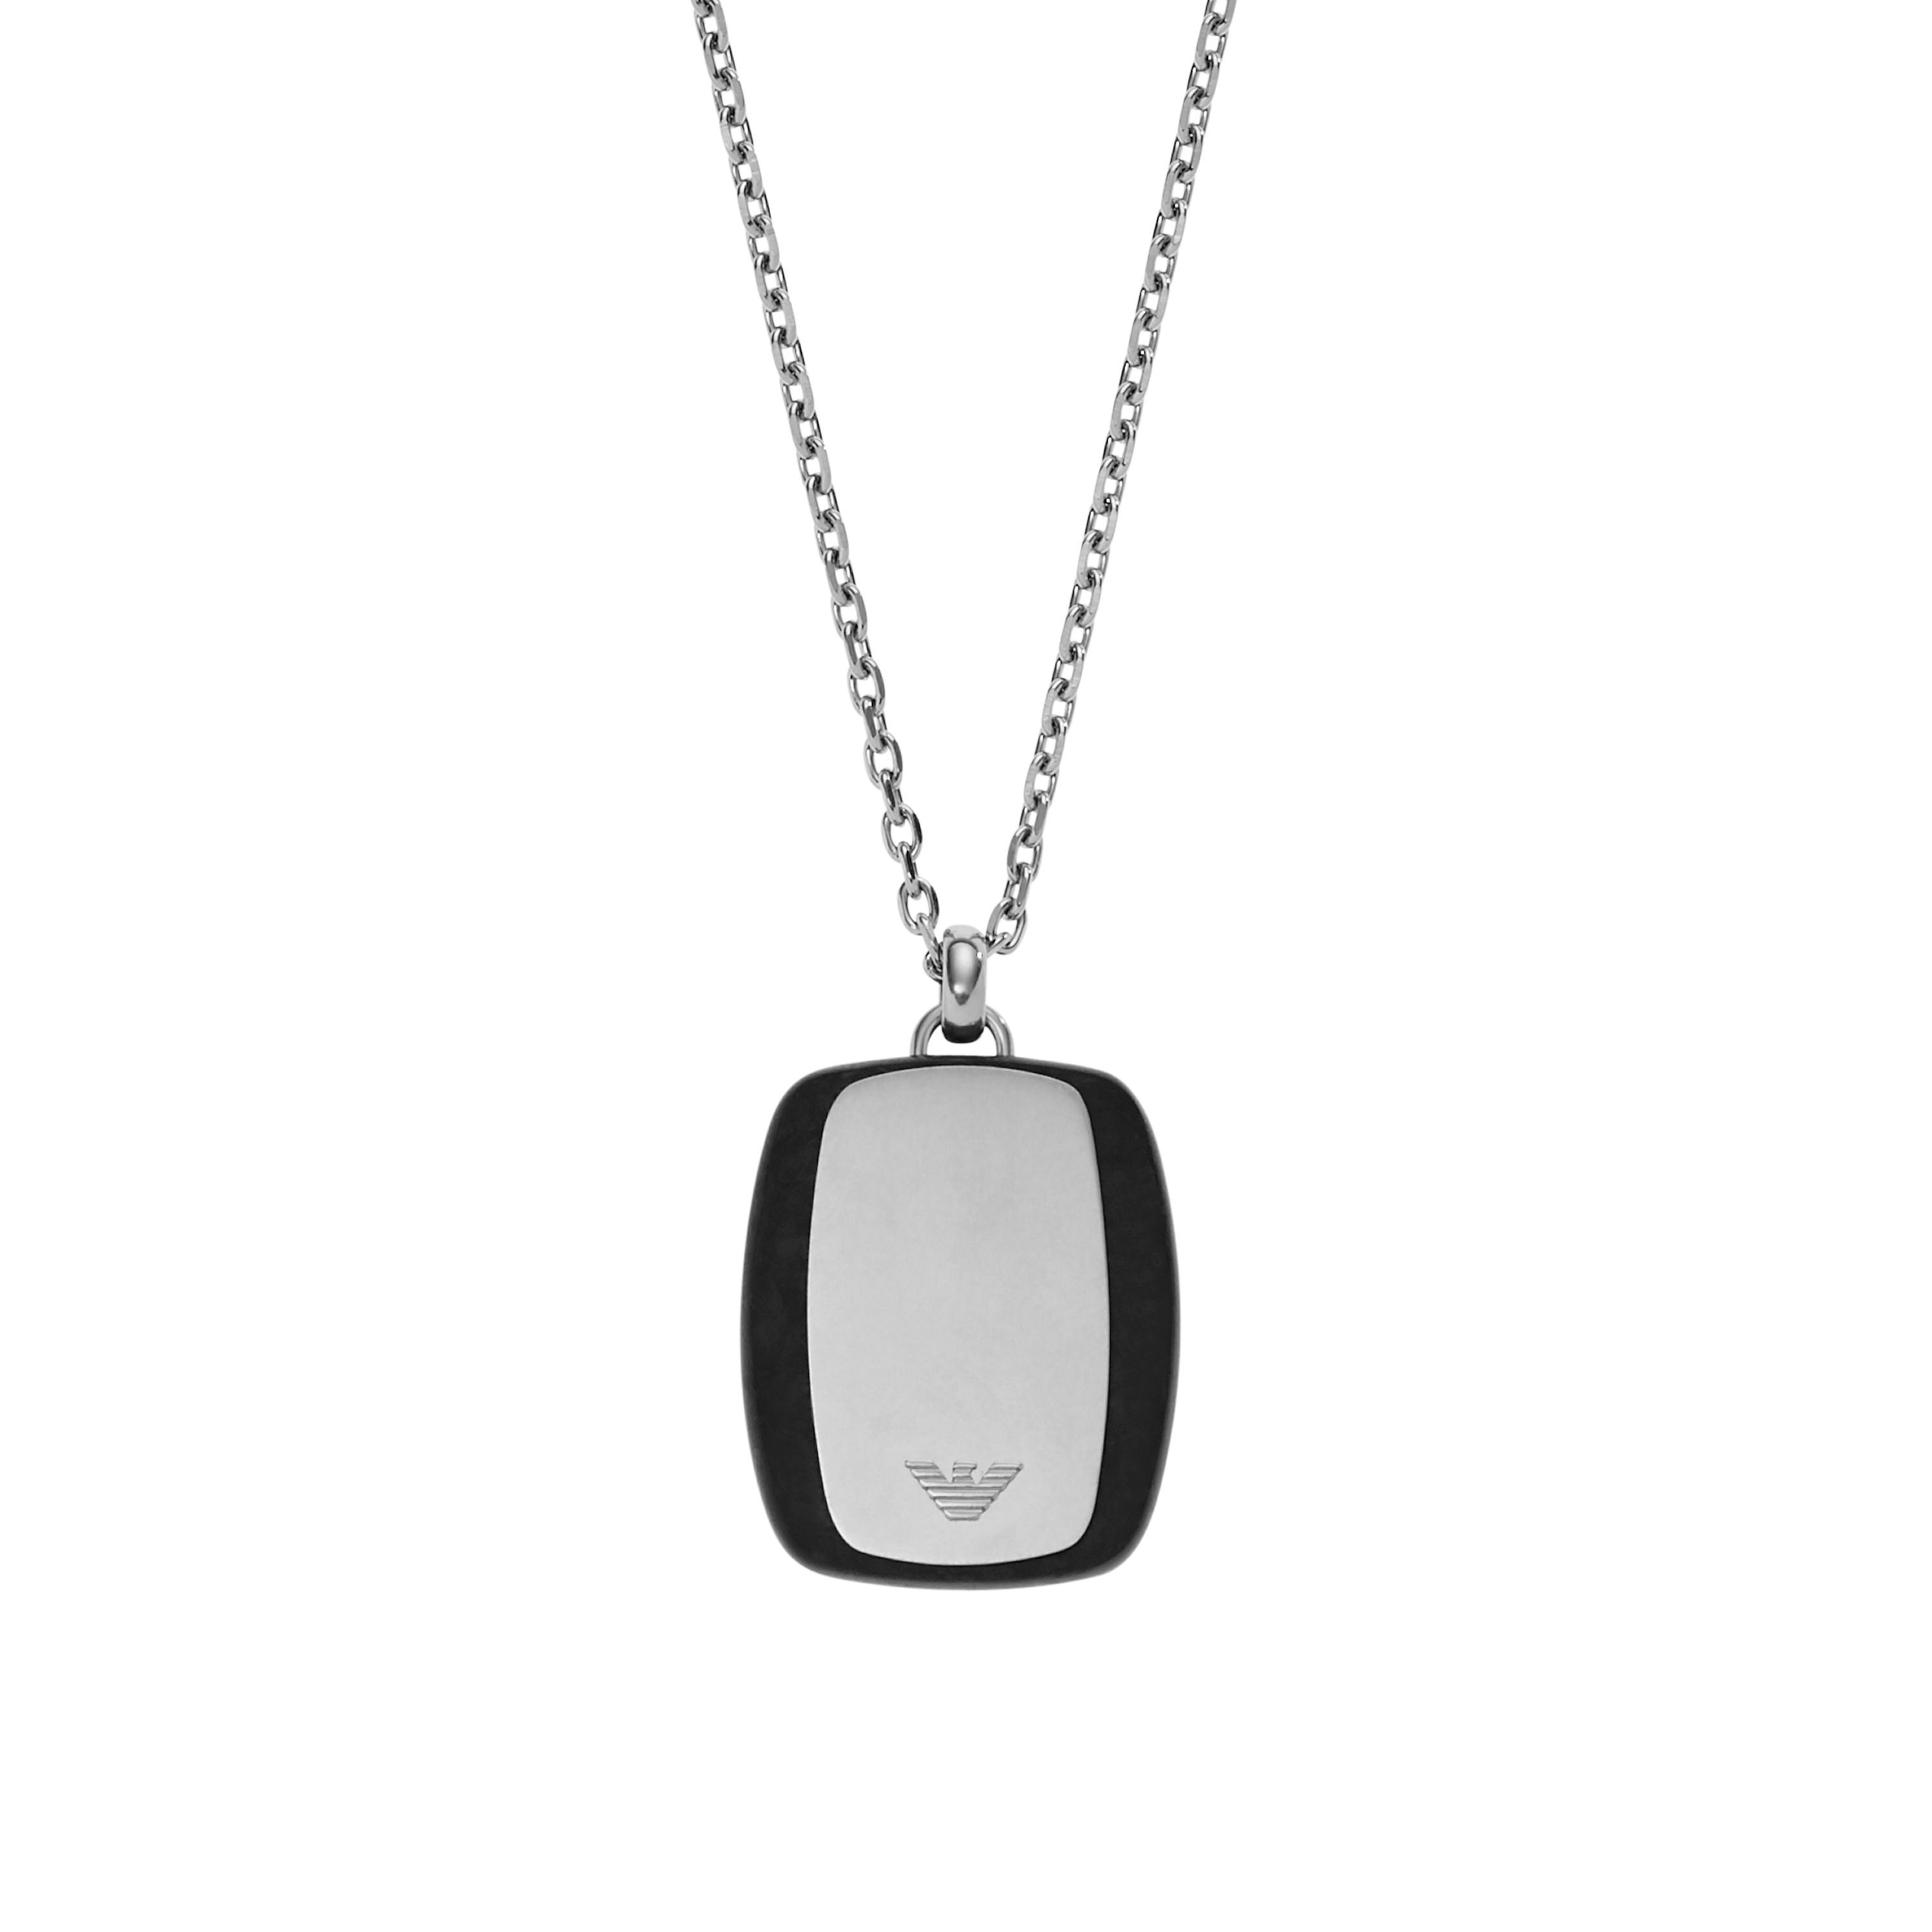 Emporio Armani Egs2187040 mens necklace, N/A Buy for: GBP99.00 House of Fraser Currently Offers: Emporio Armani Egs2187040 mens necklace, N/A from Store Category: Accessories > Jewellery > Necklaces for just: GBP99.00 Check more at http://nationaldeal.co.uk/emporio-armani-egs2187040-mens-necklace-na-buy-for-gbp99-00/